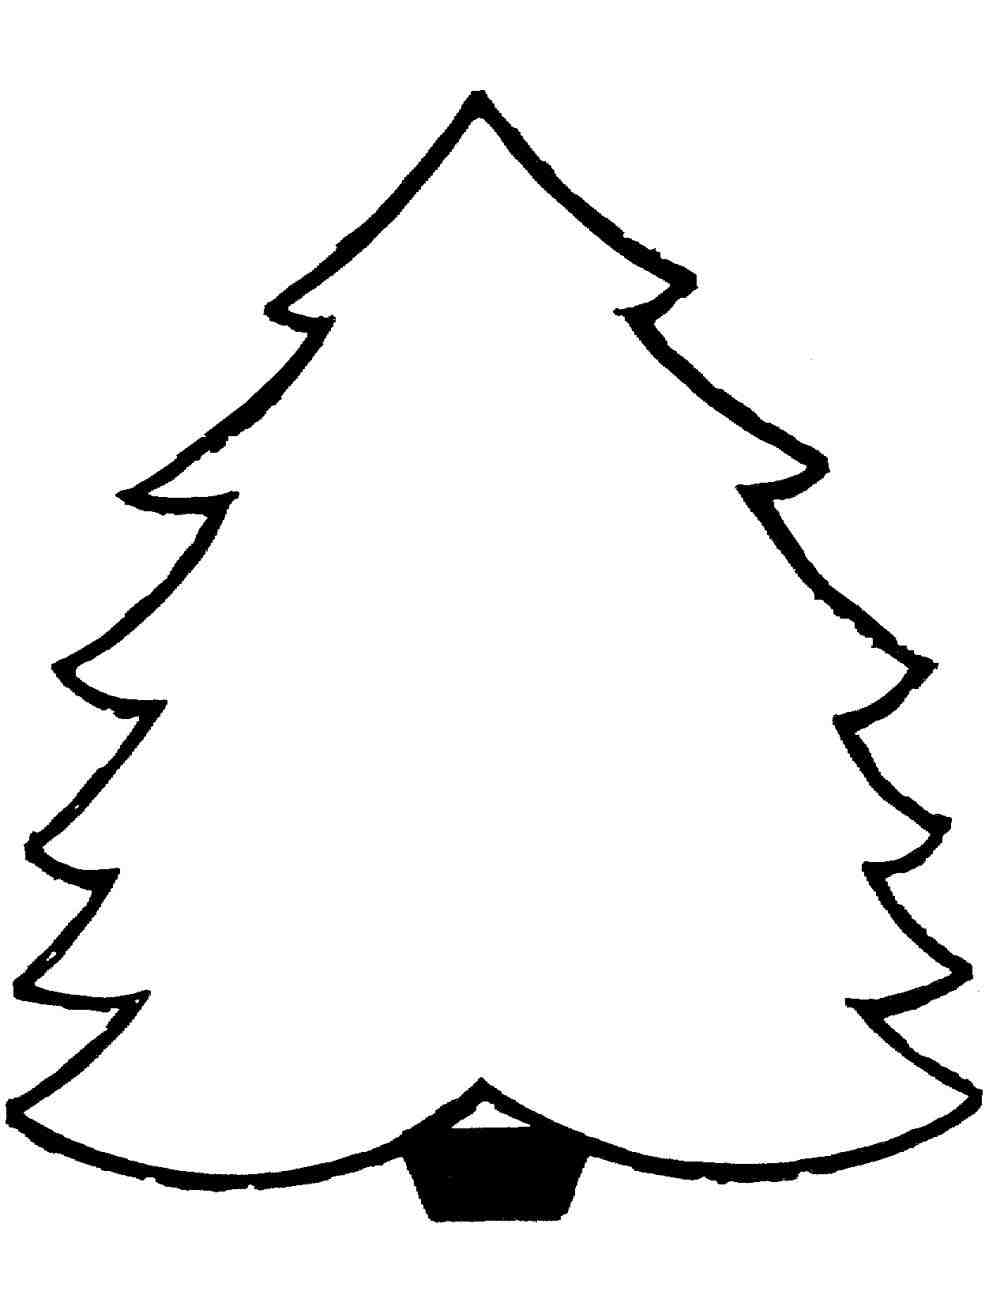 985x1314 Black And White Christmas Tree Outline cheminee.website